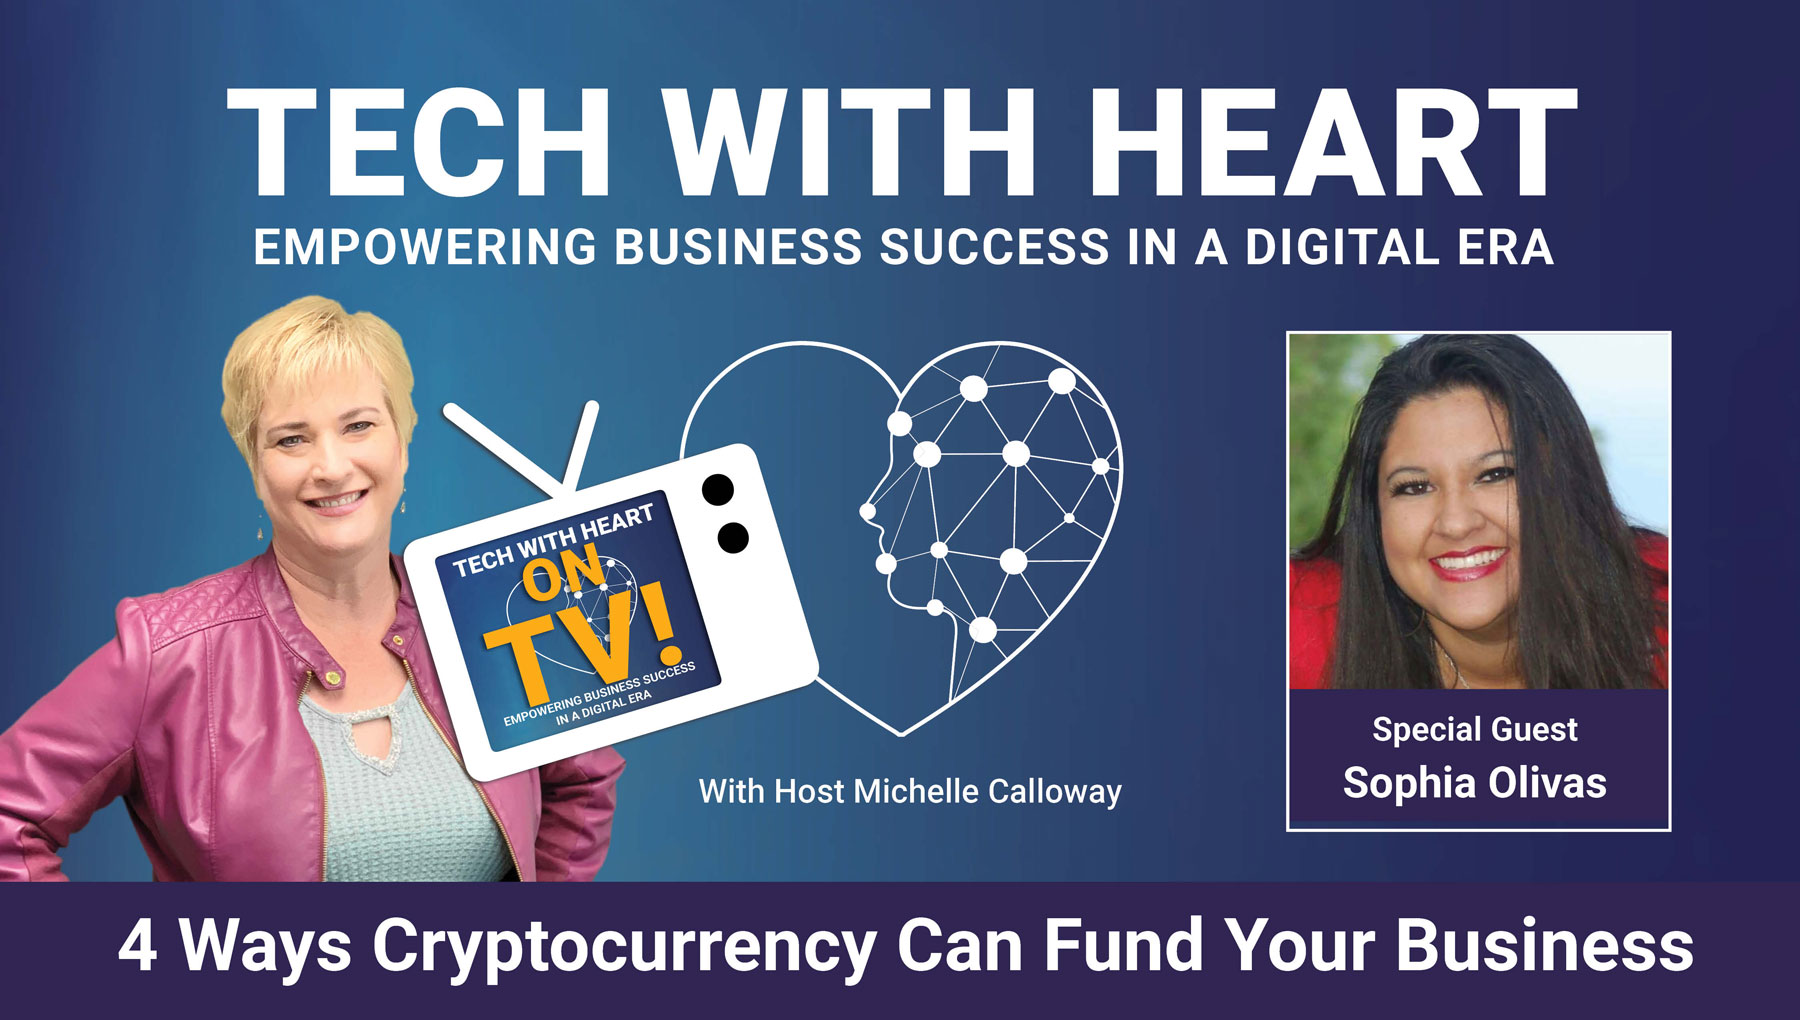 4 Ways Cryptocurrency Can Fund Your Business with Sophia Olivas